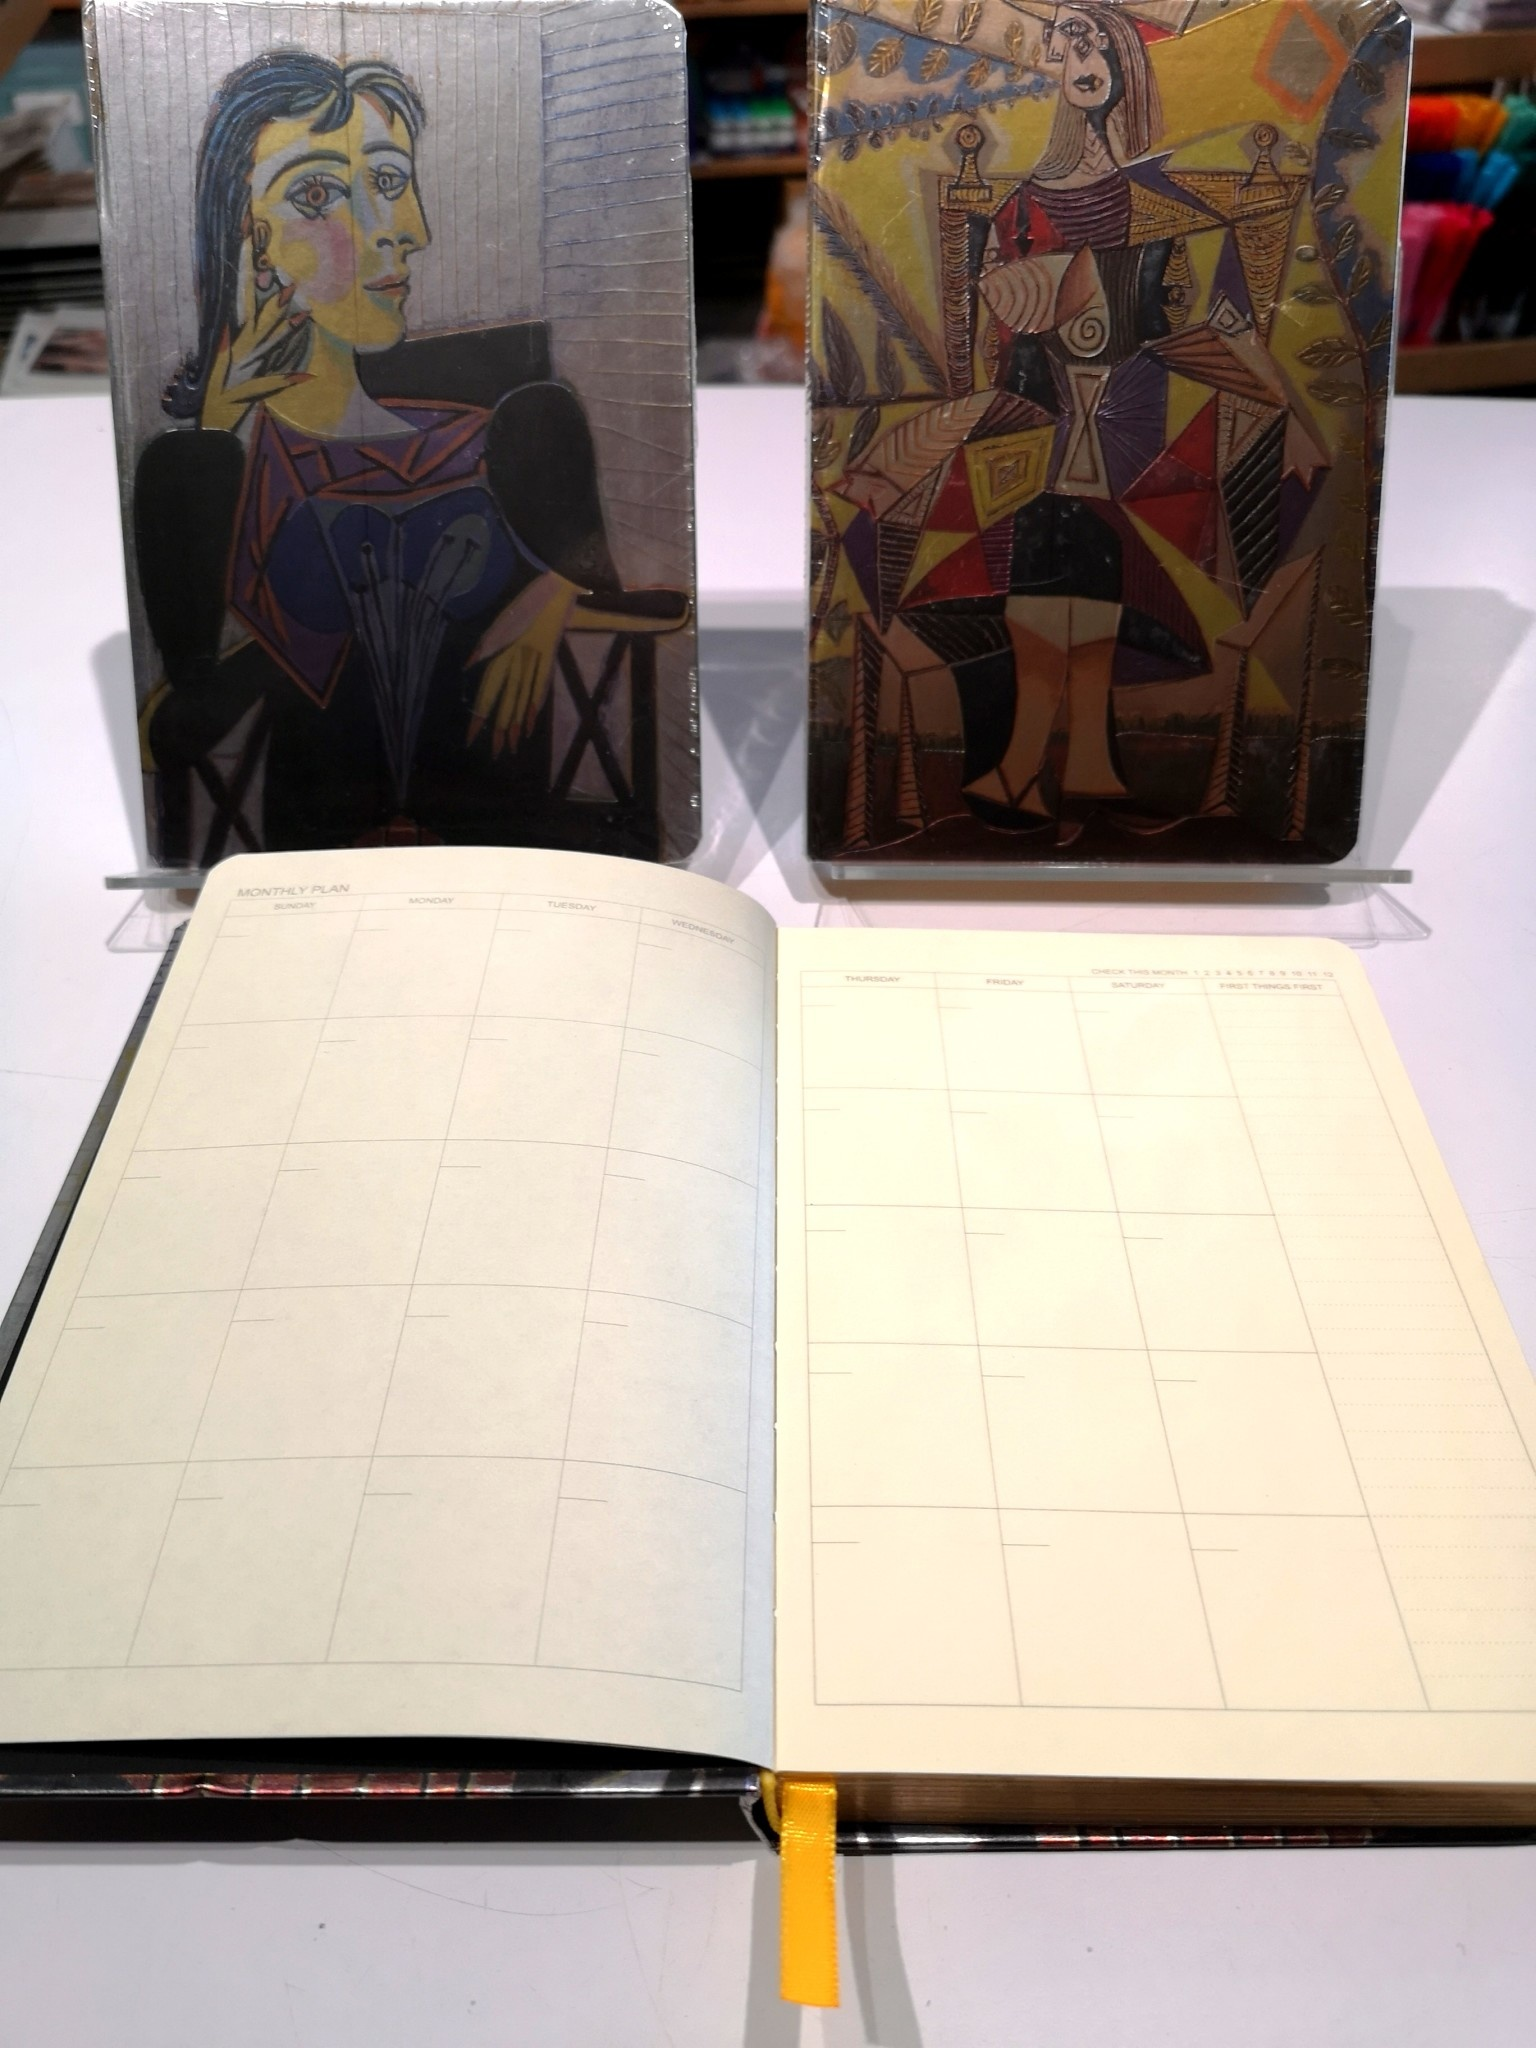 APYW7G67 Hard Cover Picasso 32150 Notebook